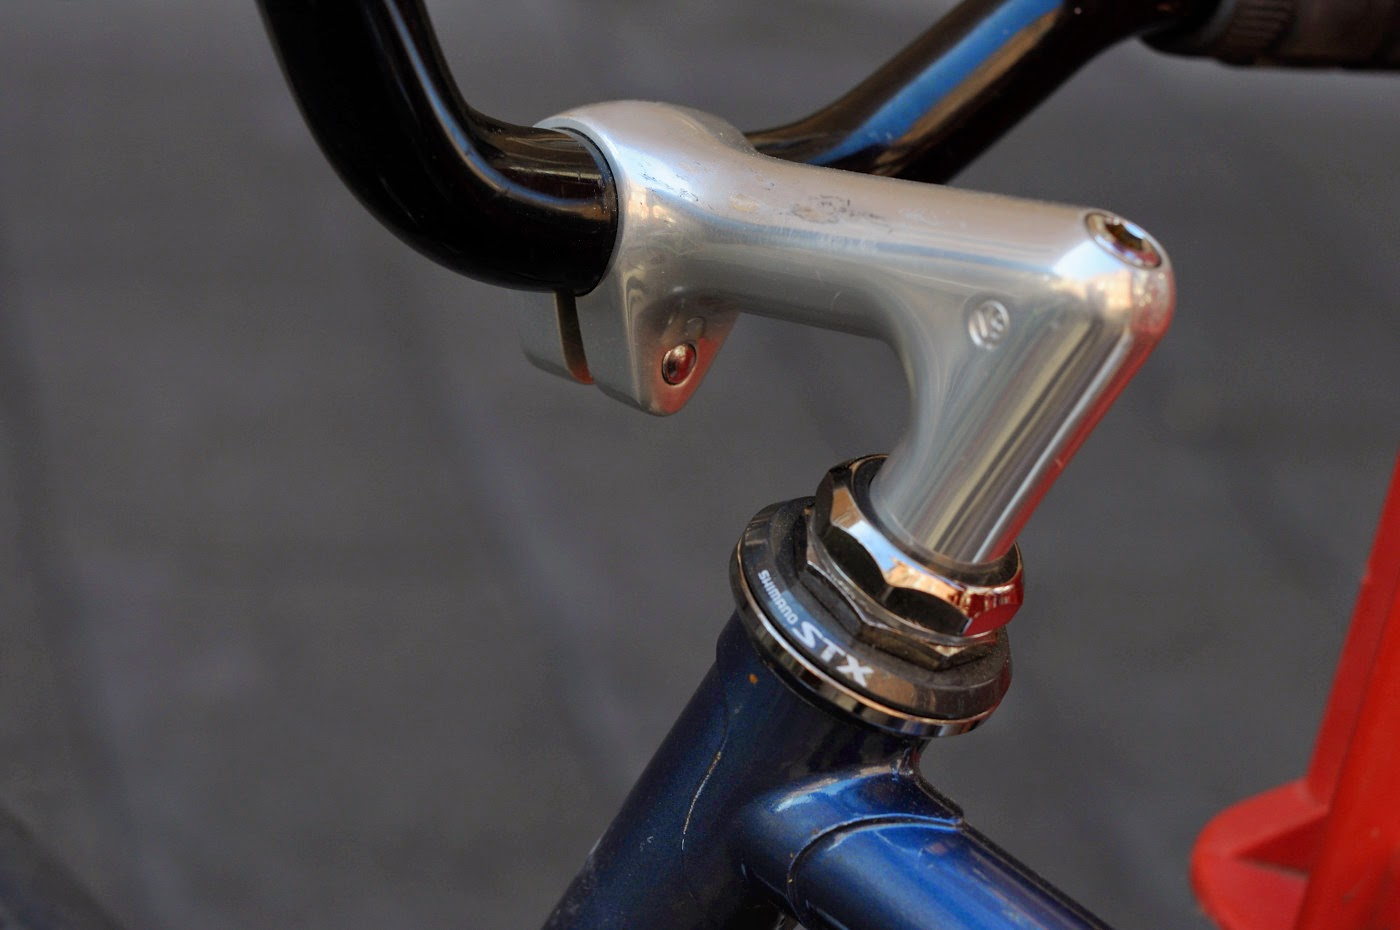 Bespoke, custom, Tim Macauley, The Biketorialist, The Light Monkey Collective, Adelaide, Leigh St, bicycle, fixed speed, fixie, bike, setup, sr, headstem, lugging, lugs, headset